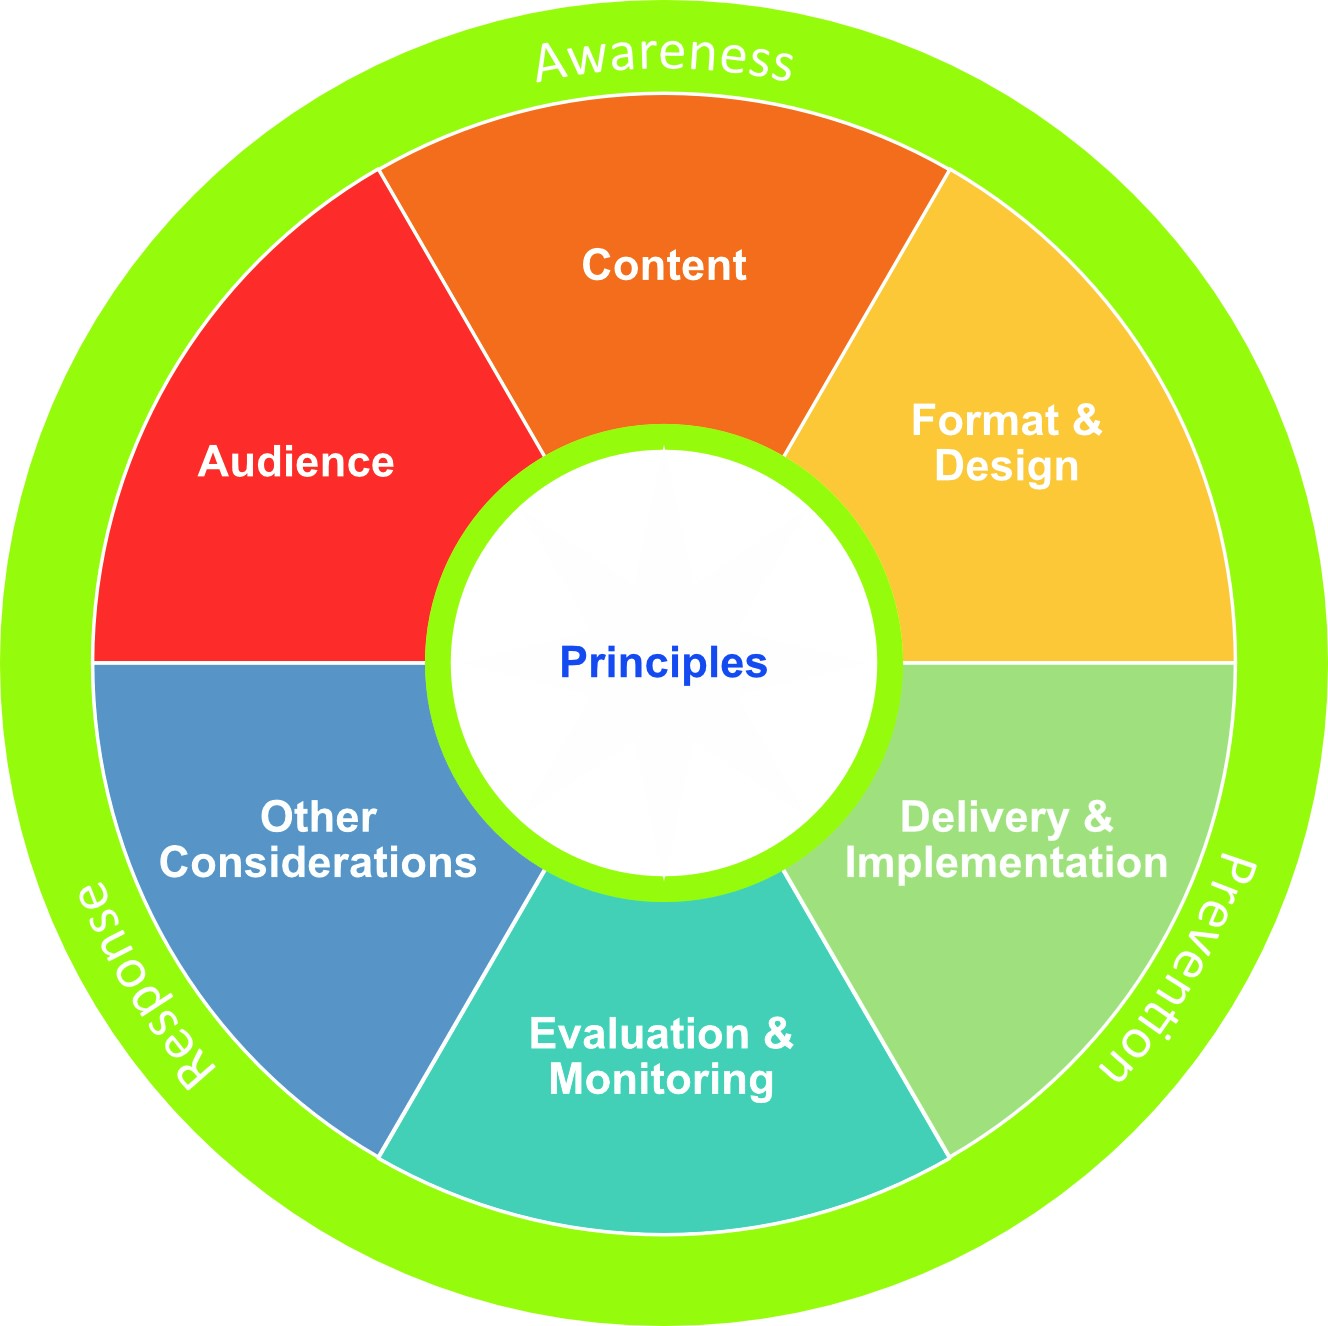 The Planning wheel. The image is described in the following text.